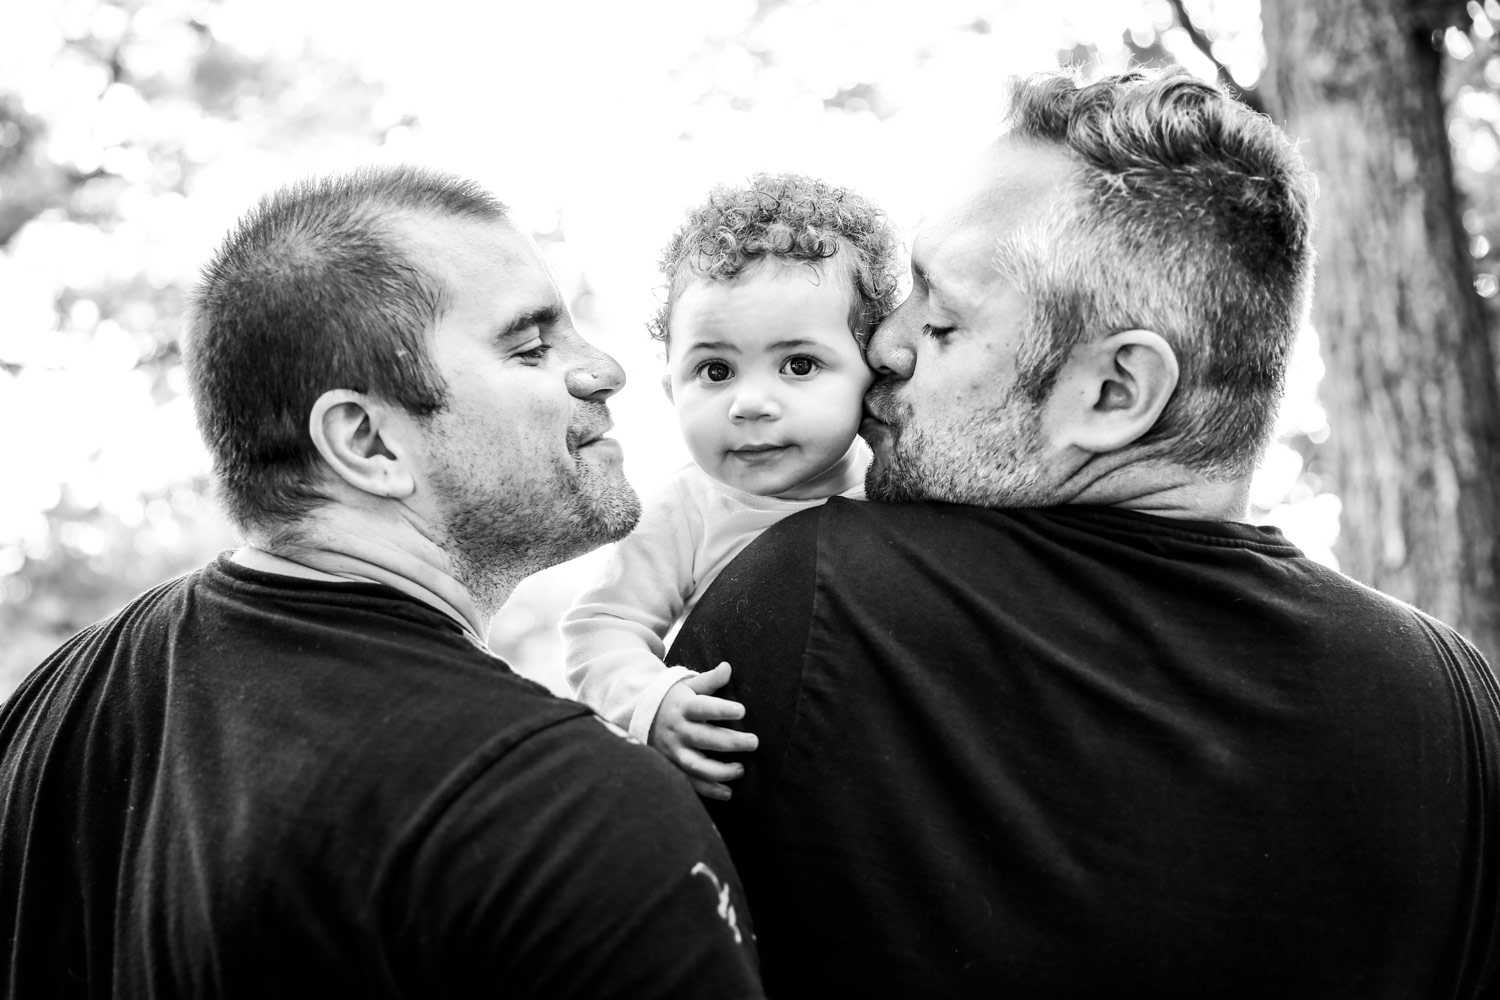 lgbt-family-photographer-ruthie-hauge-photography-madison-wi-gay-same-sex.jpg